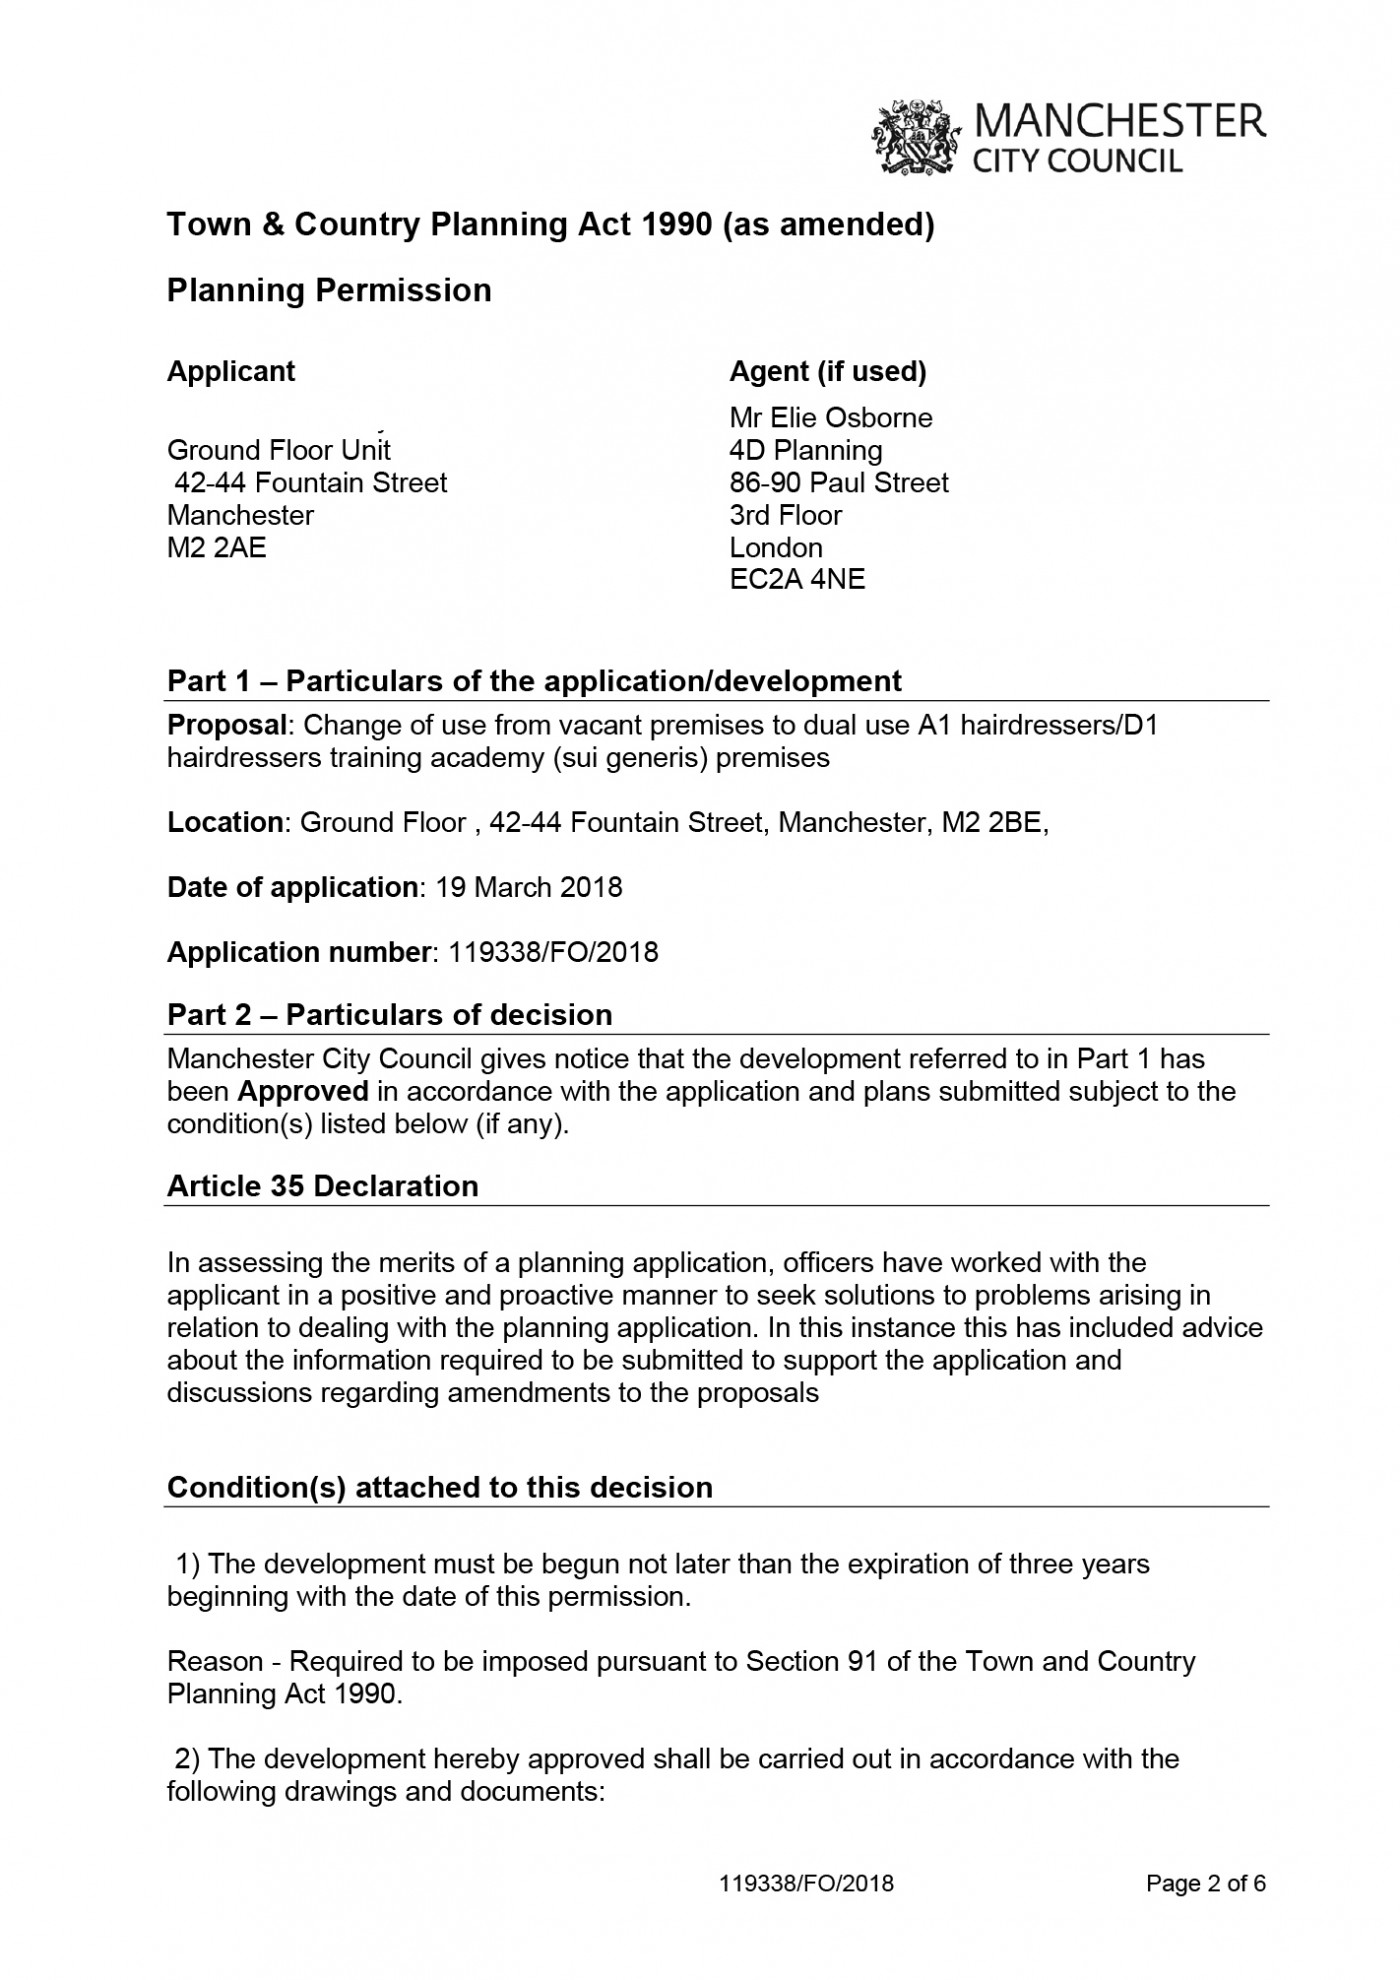 Manchester City Council Decision Notice - Planning Permission Granted